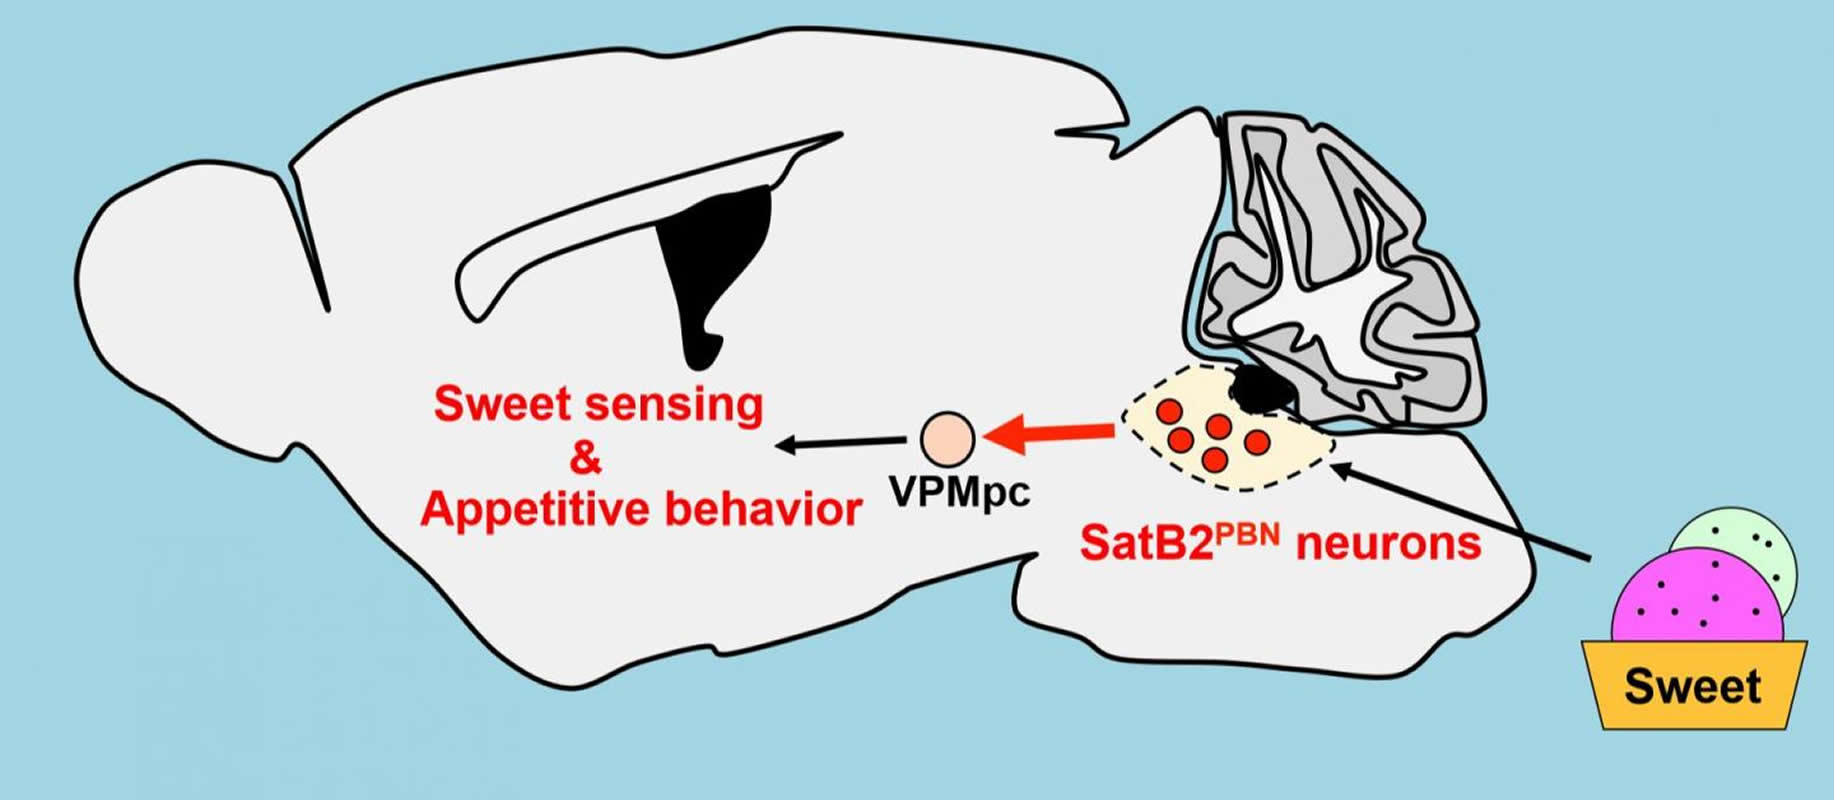 This shows the network from the gustatory thalamus to the cortex in mice